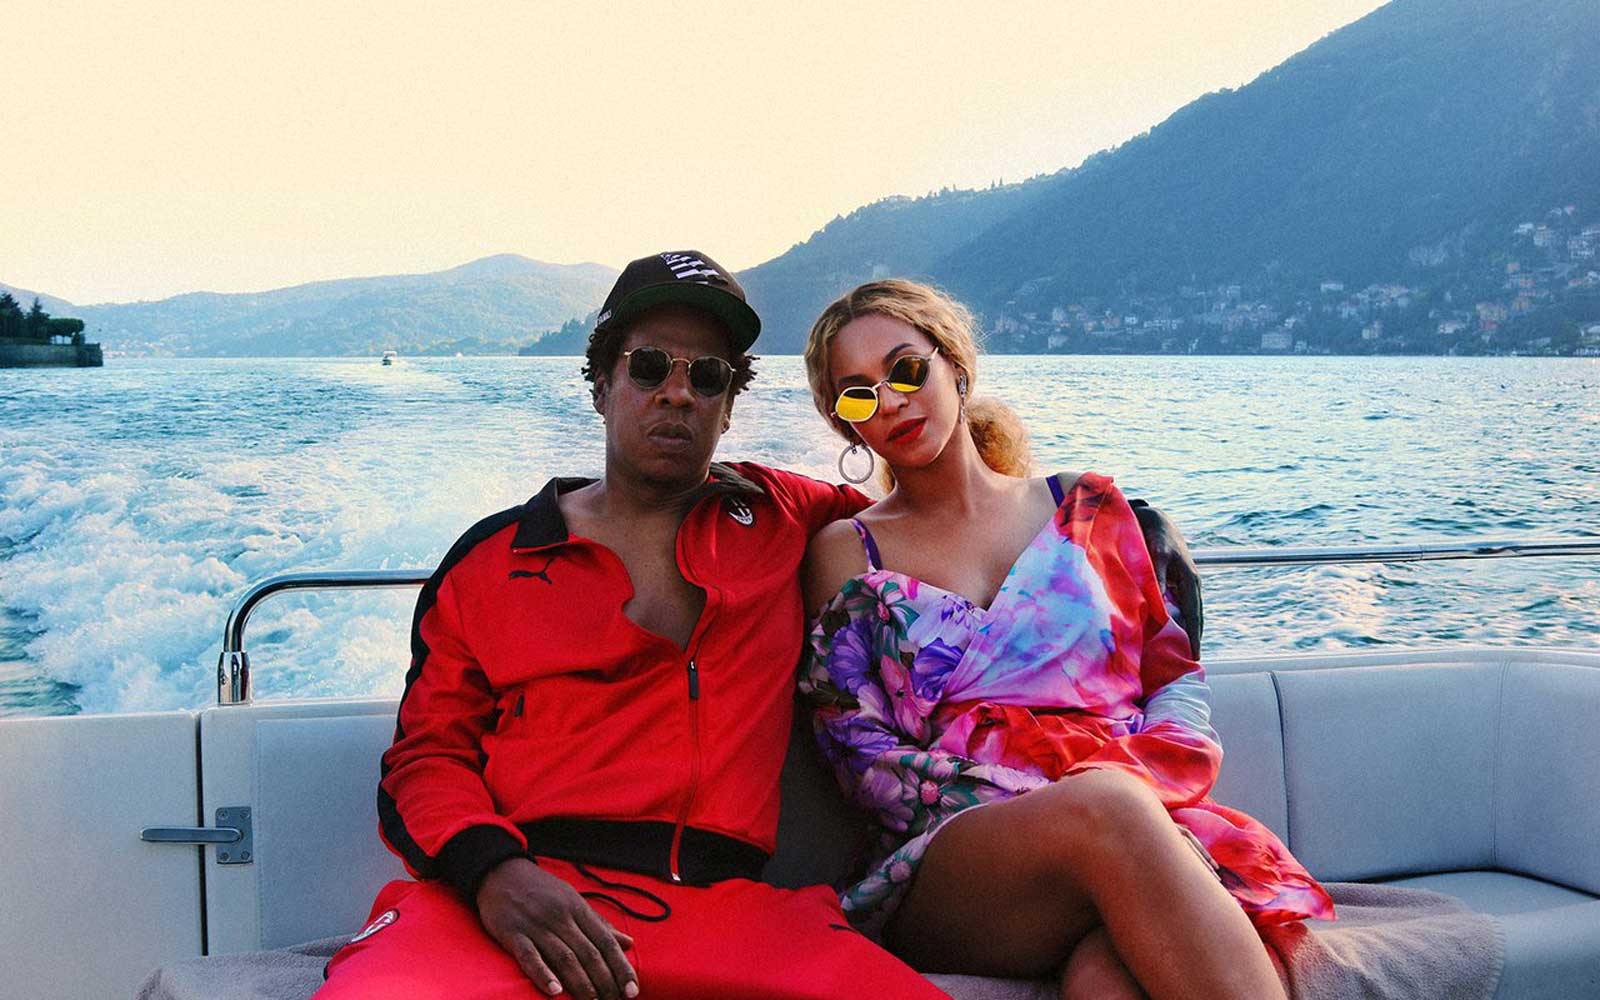 Beyoncé and Jay-Z, The Carters in Europe